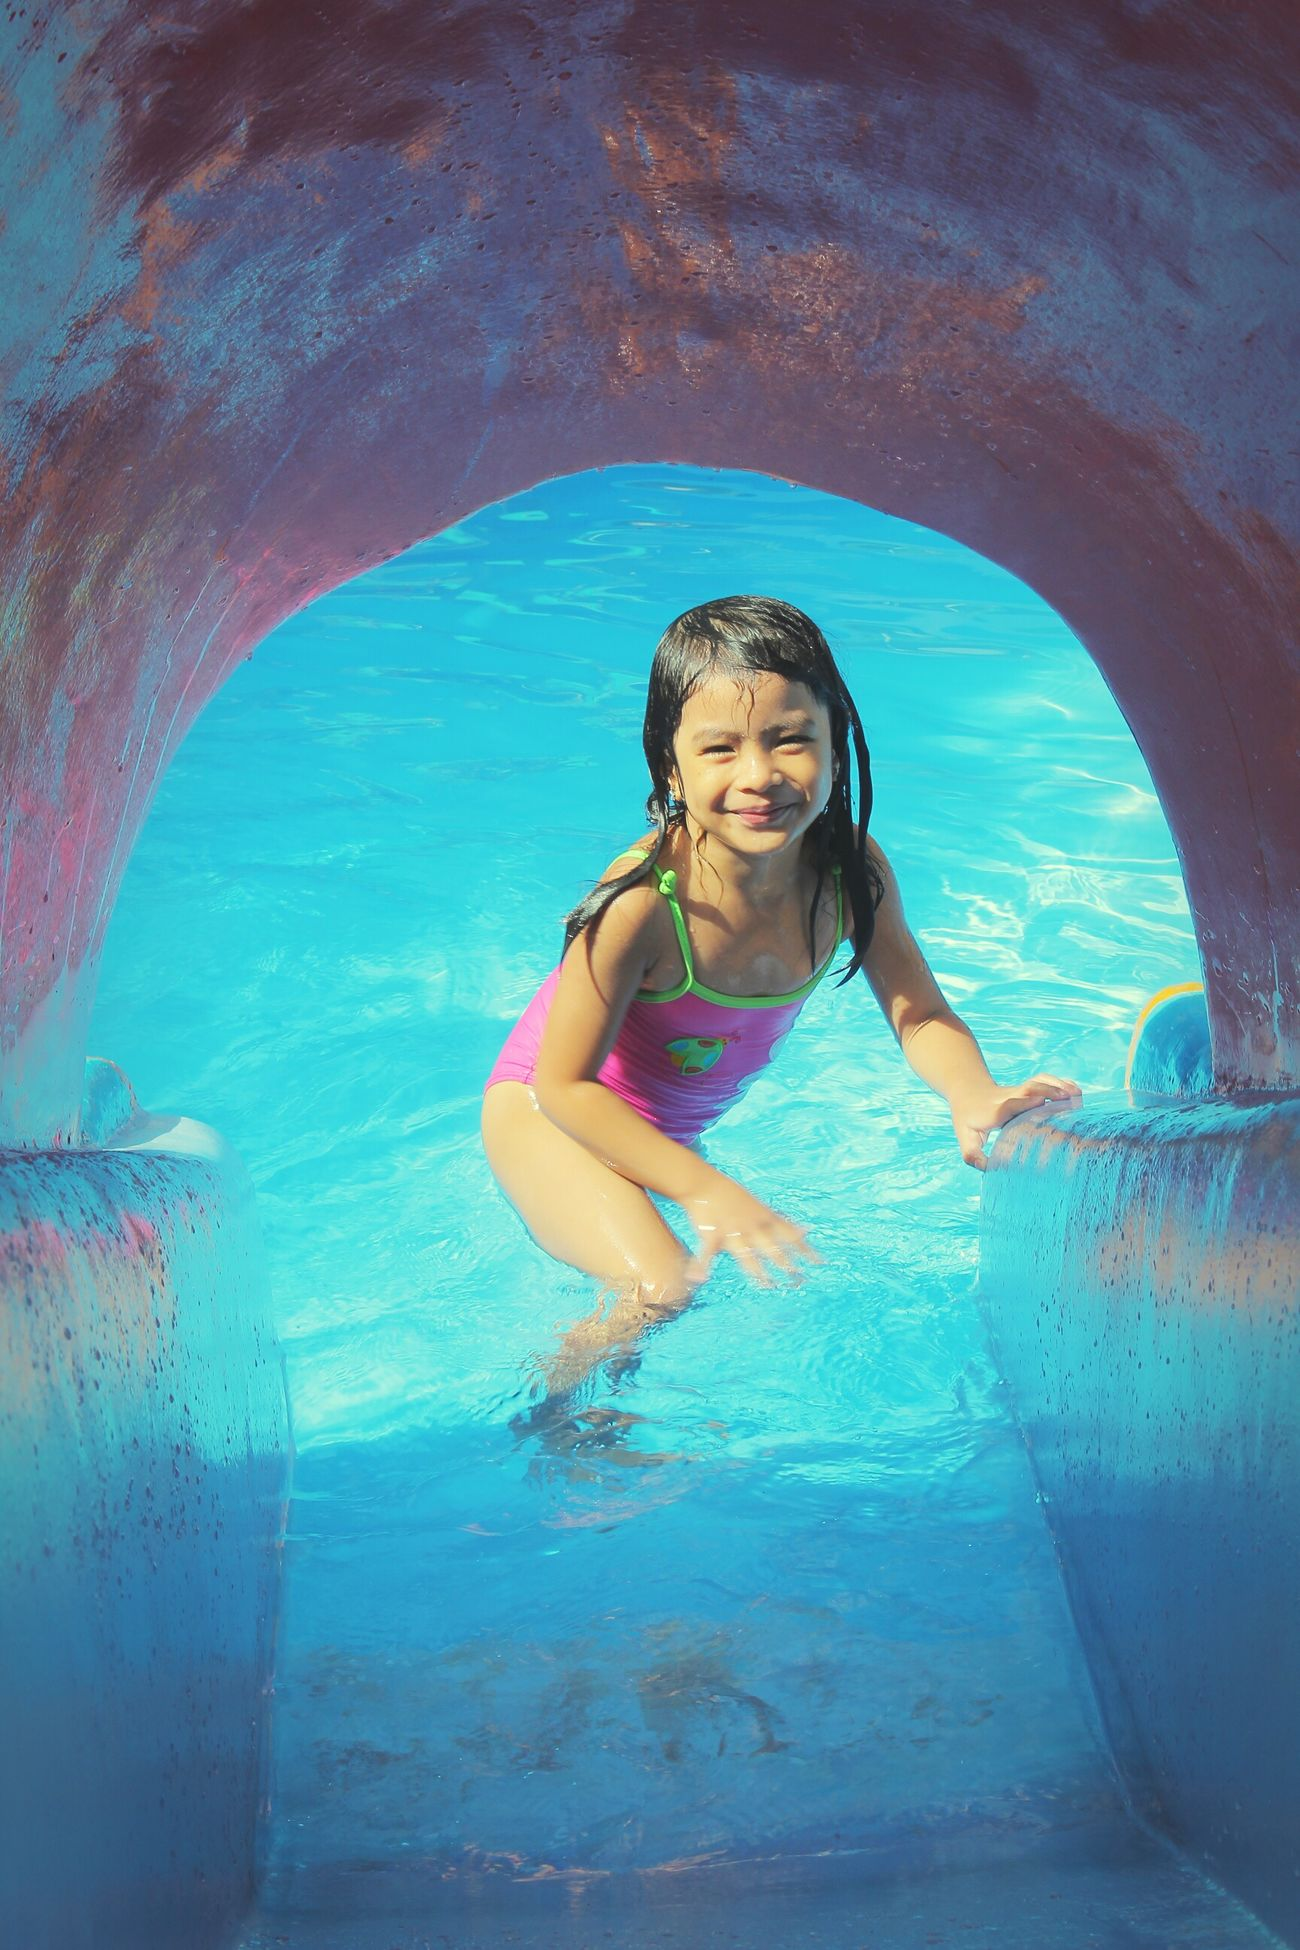 Rain Ate Daughter Swimmingpool IncFamily Batangas